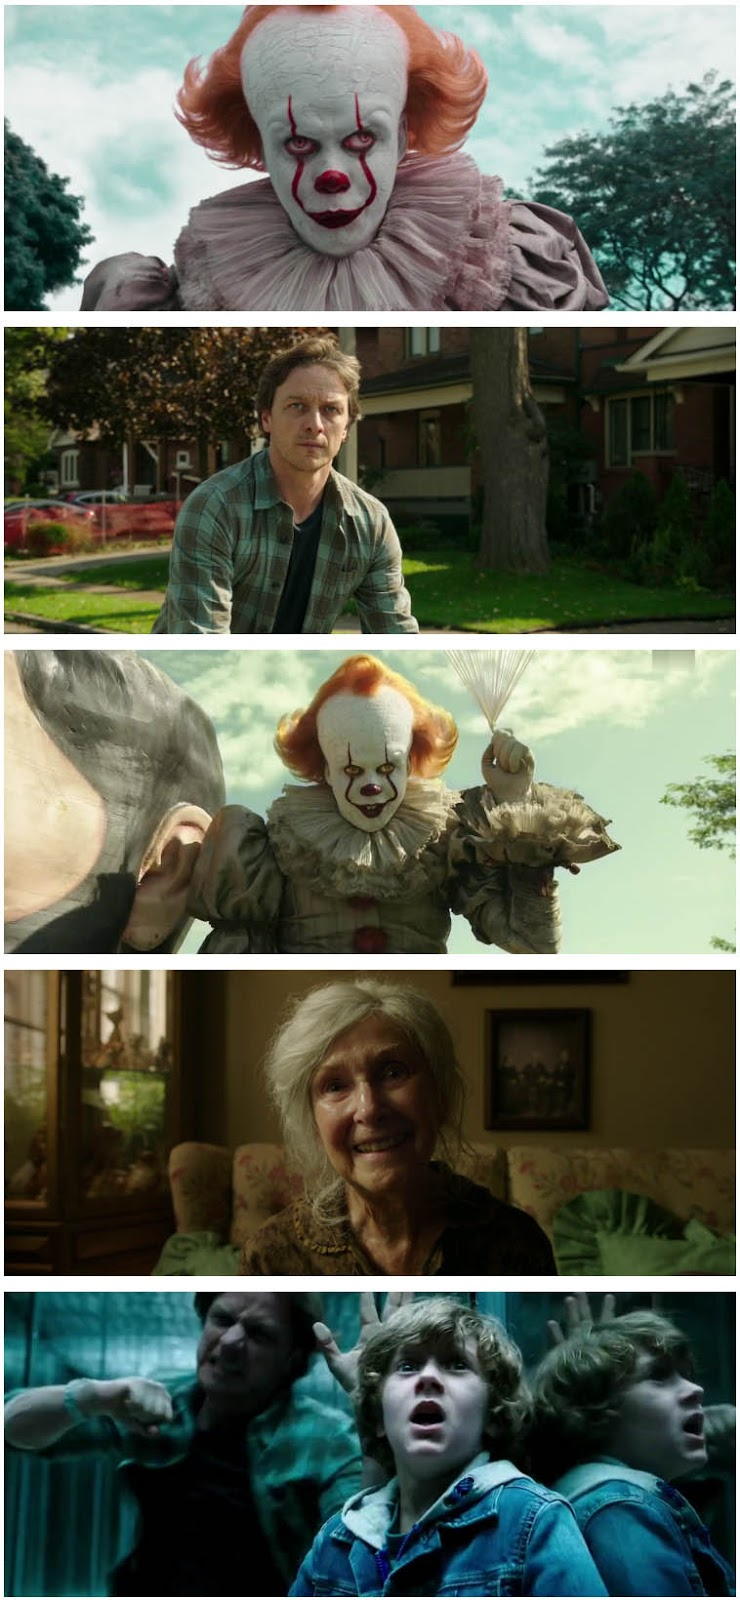 It chapter 2 full movie download in hindi dubbed filmyzilla